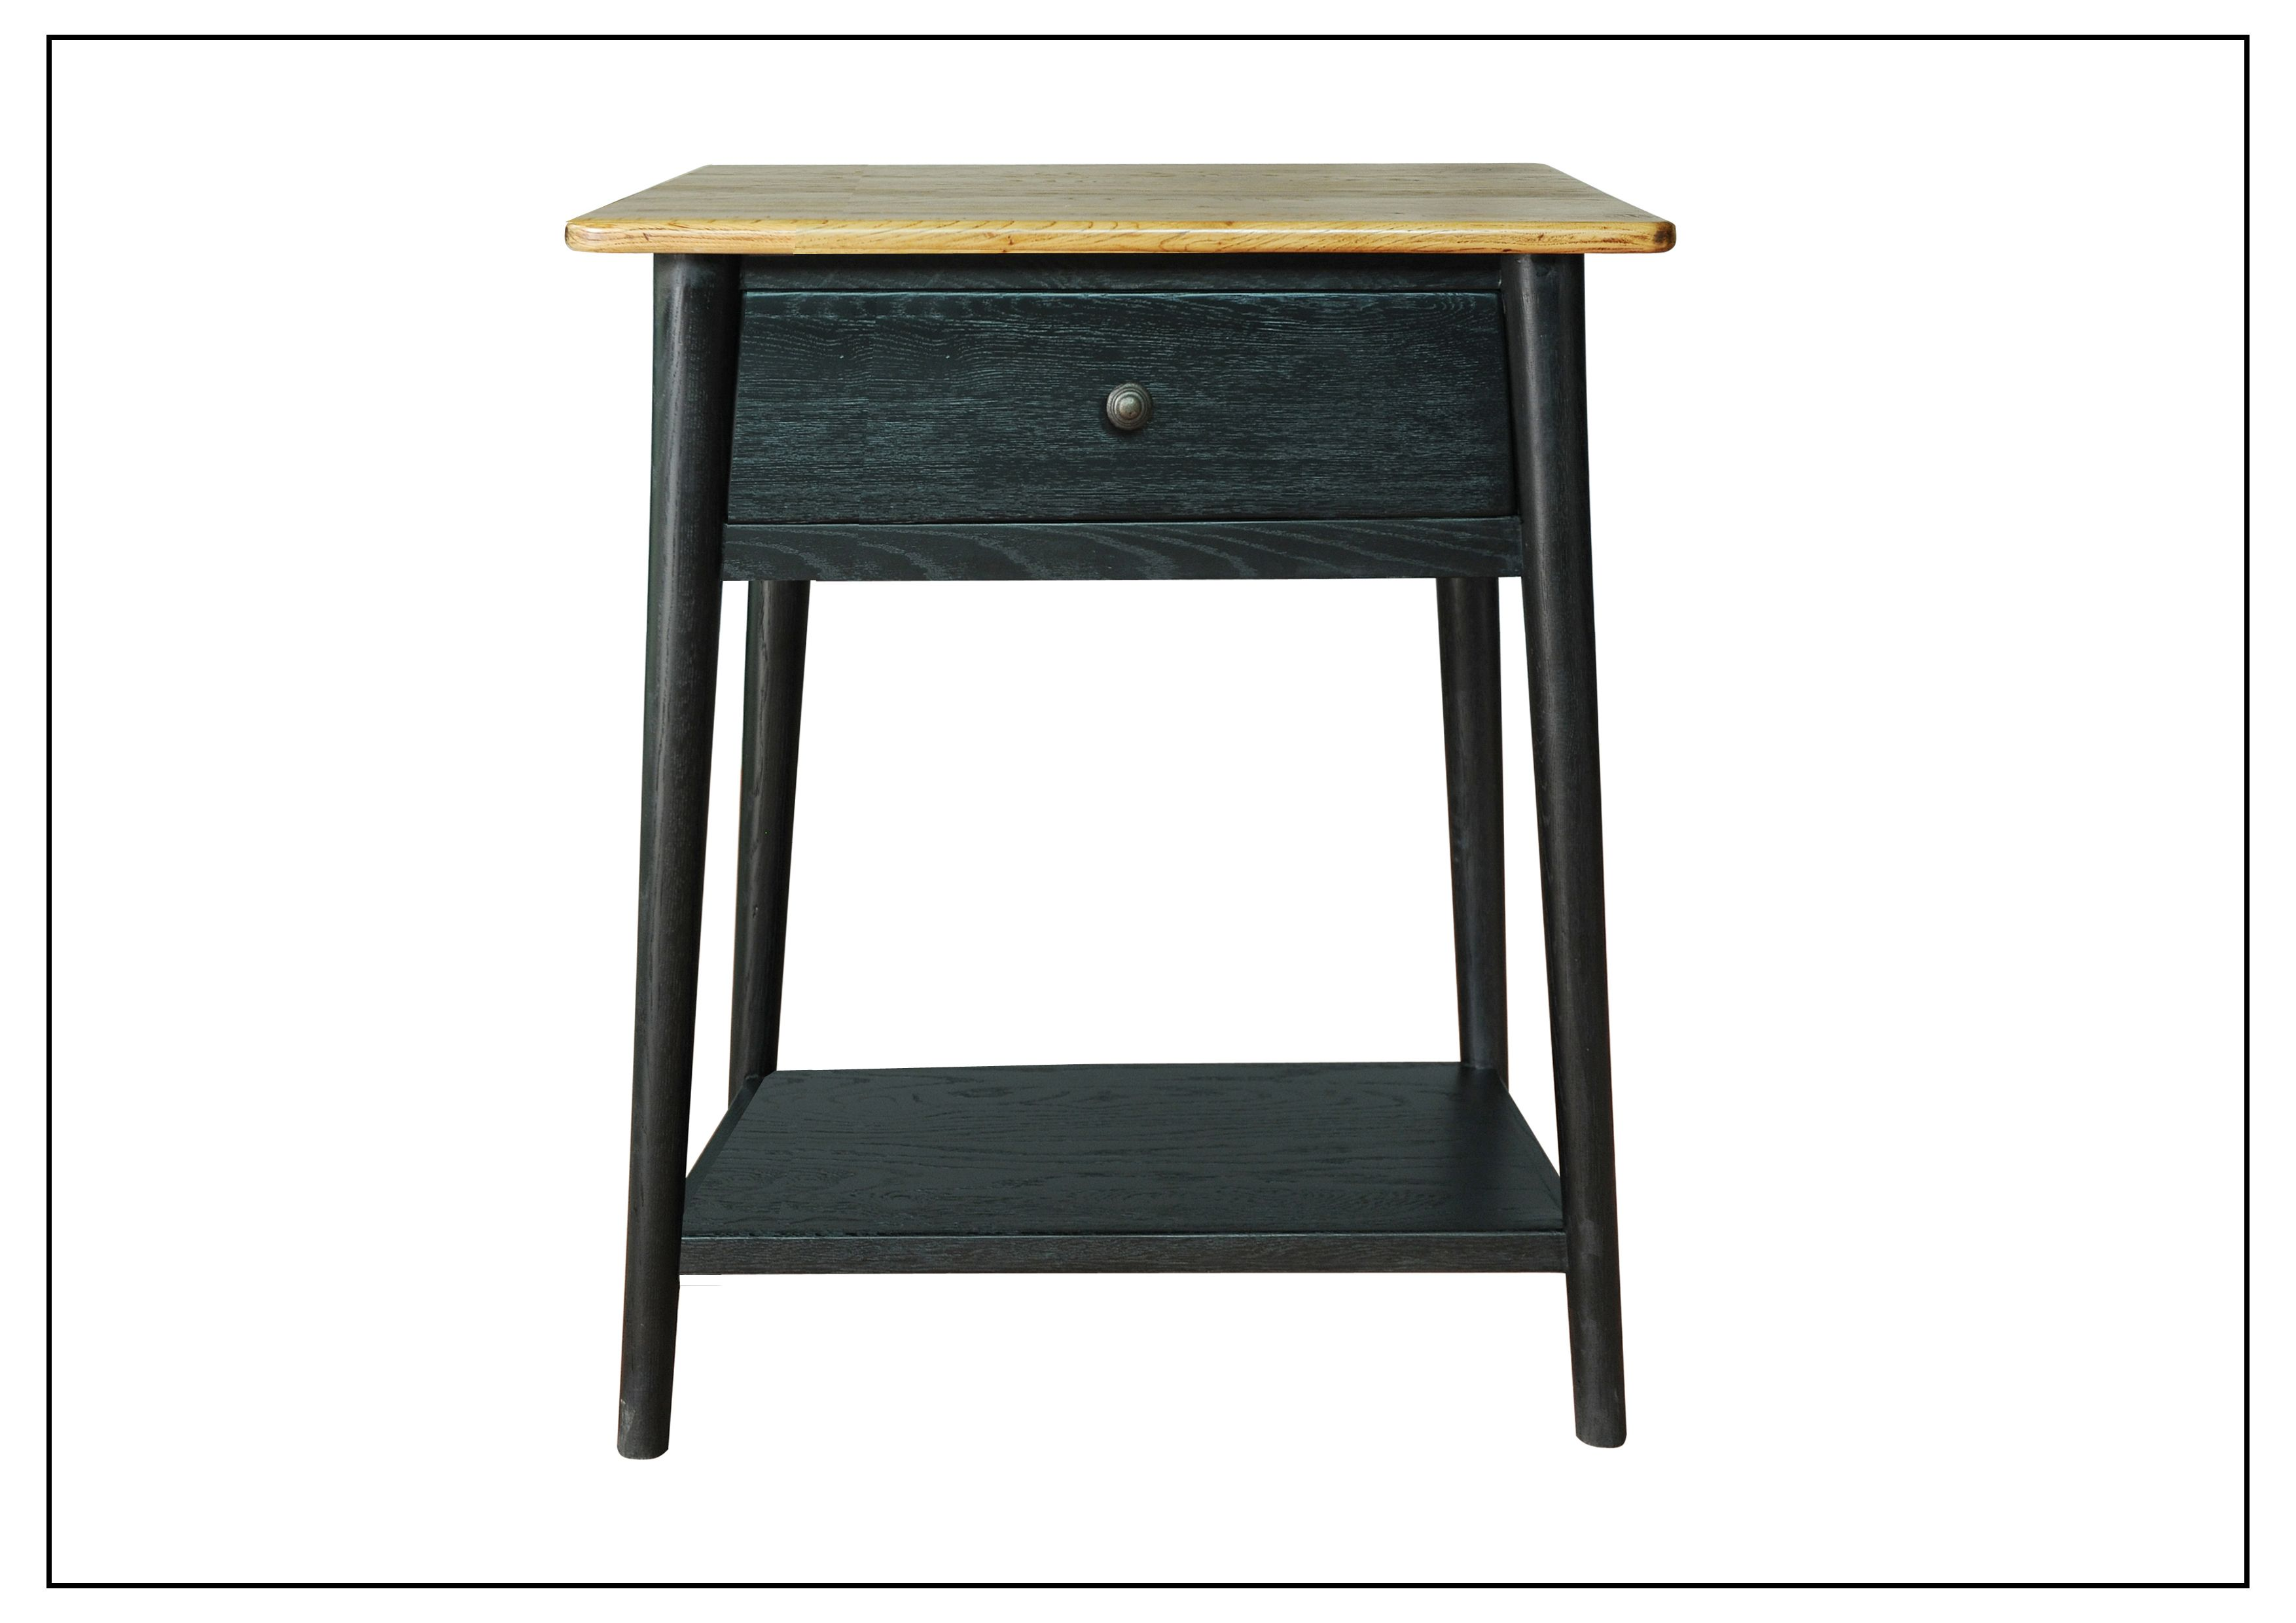 MAB SCT006 Small Console Table 650mm X 400mm X 850mm High